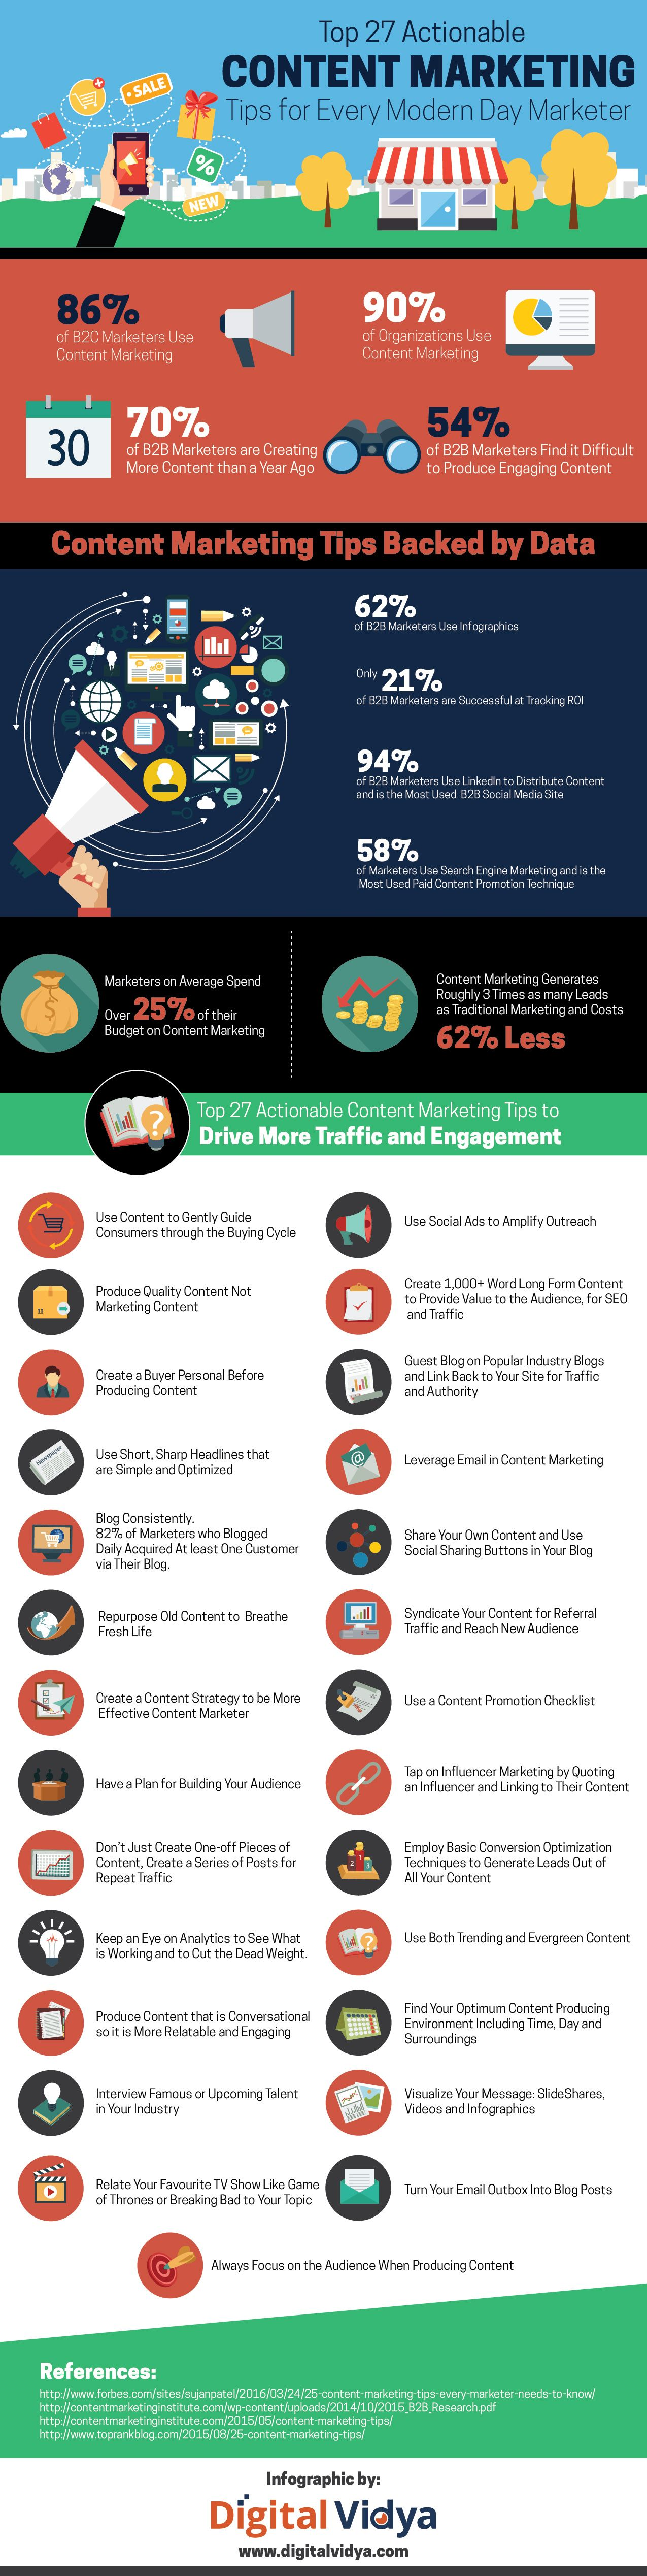 Top 27 Actionable Content Marketing Tips for Every Modern Day Marketer #Infographic